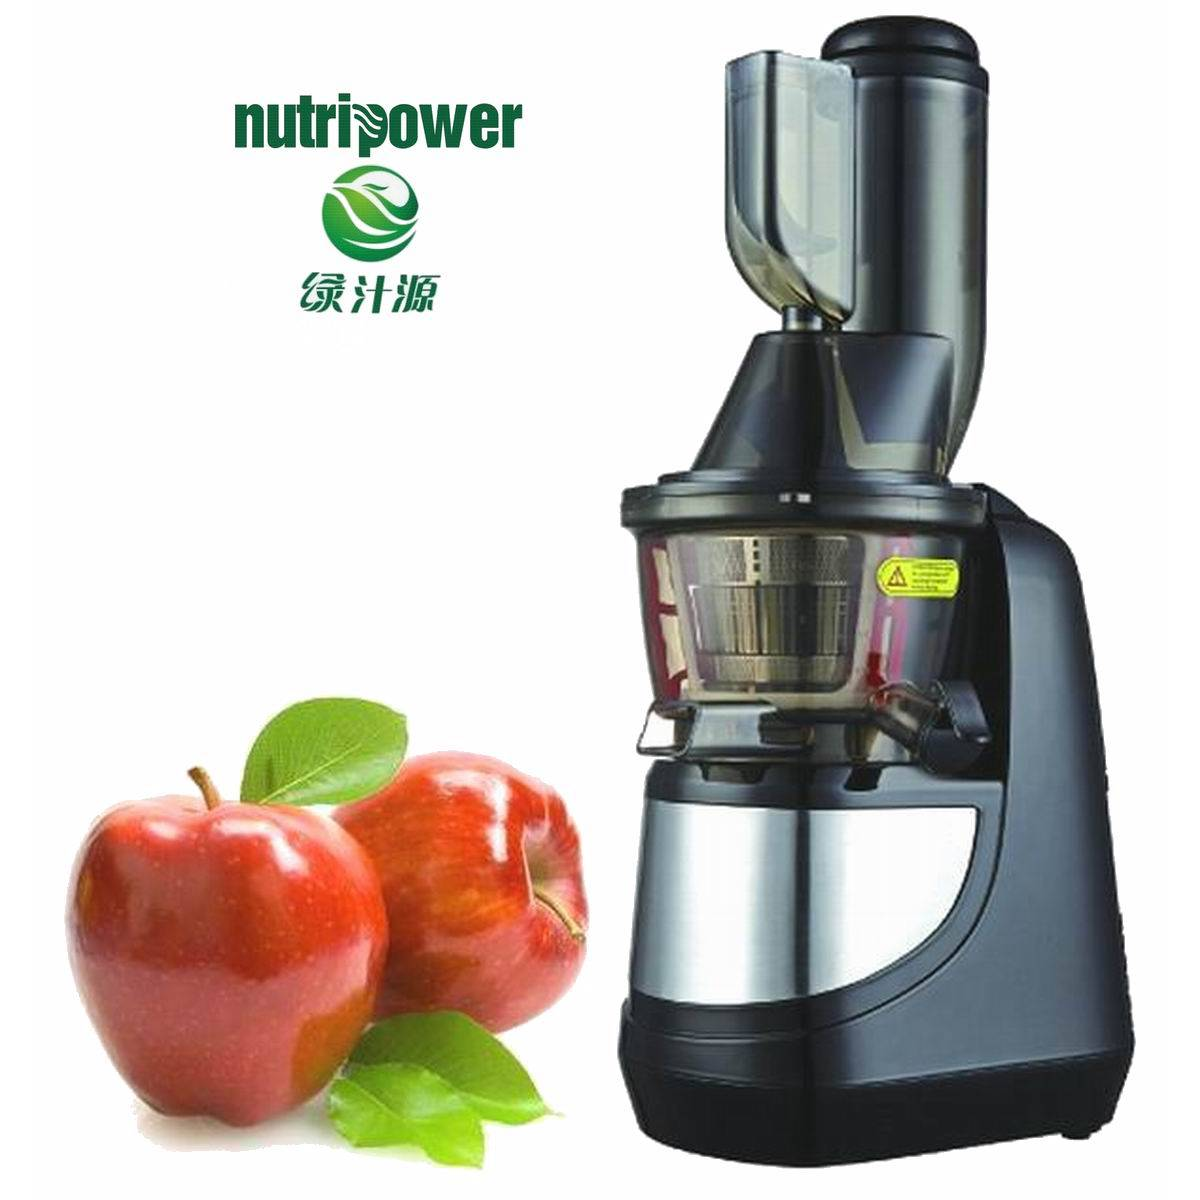 High quality cold press juicer, wide mouth slow juicer